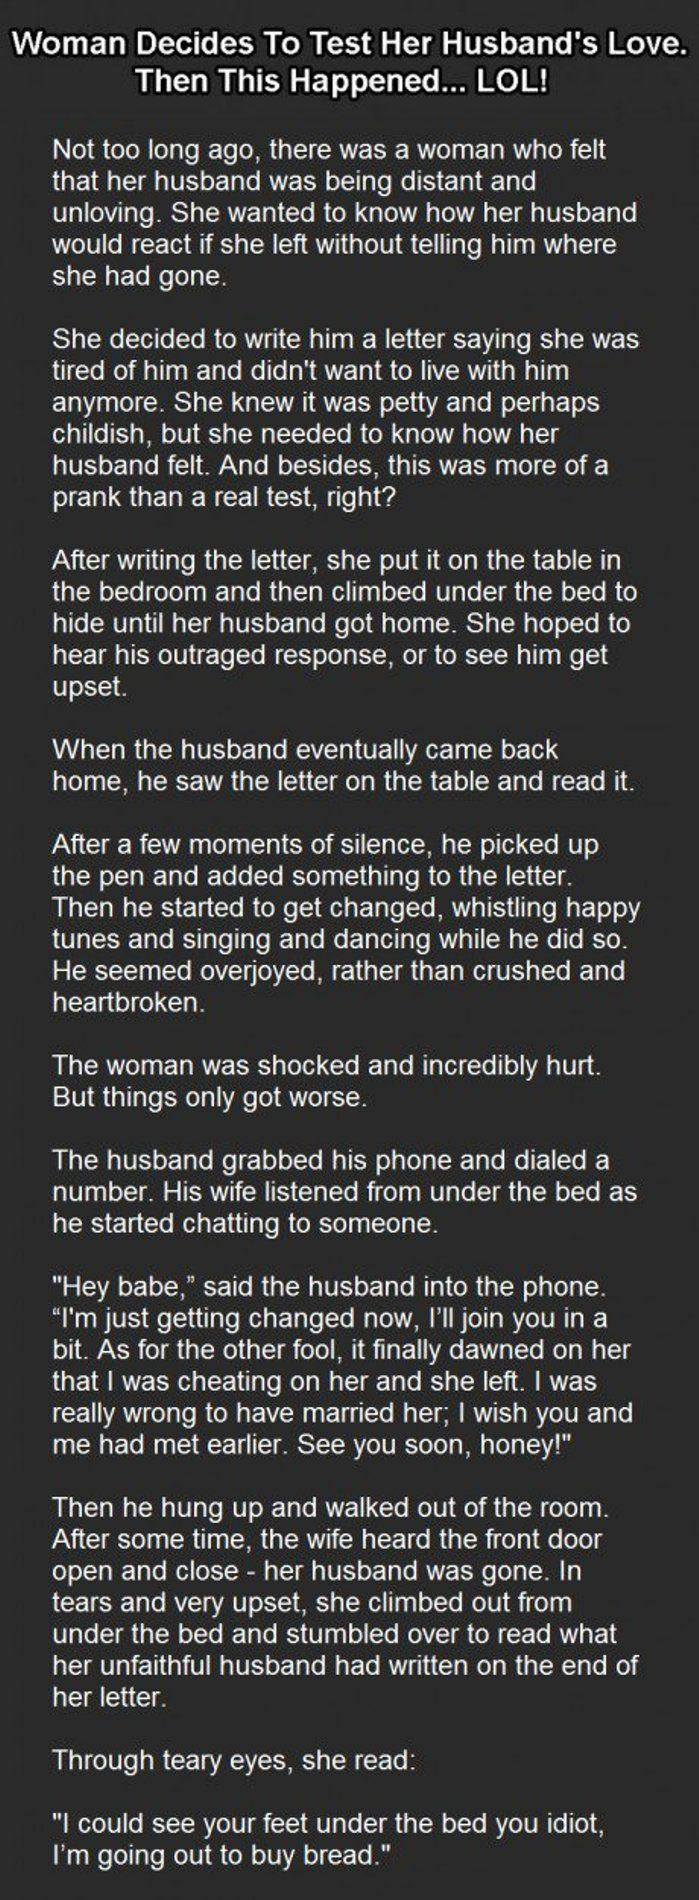 Woman Decides To Test Her Husband's Love. Then This Happened… LOL!  #Funny #HusbandWifeJOkes #CoupleJokes